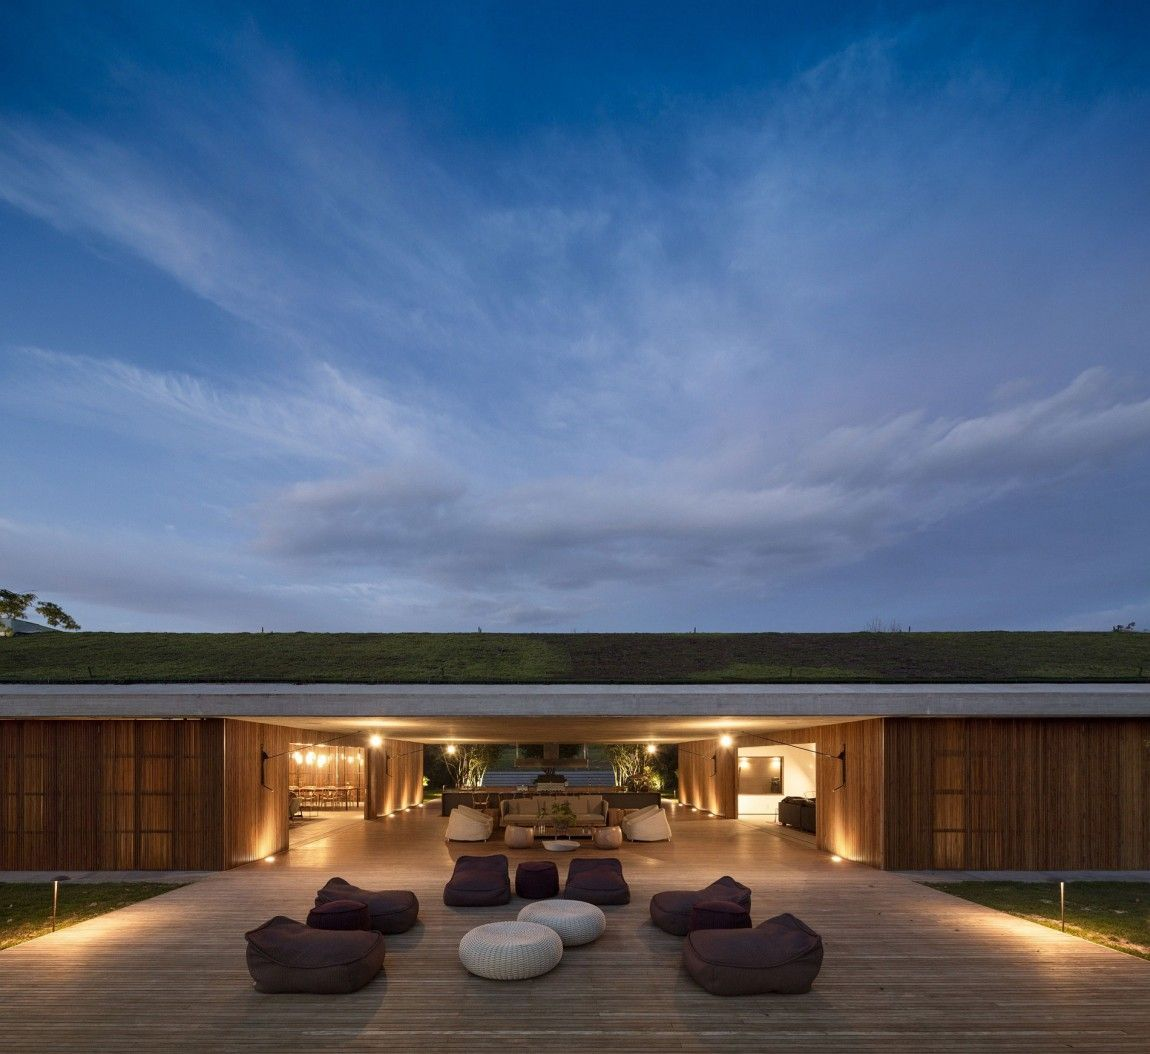 Interior/exterior overflow at the M House in Bragança Paulista, Brasil by StudioMK27